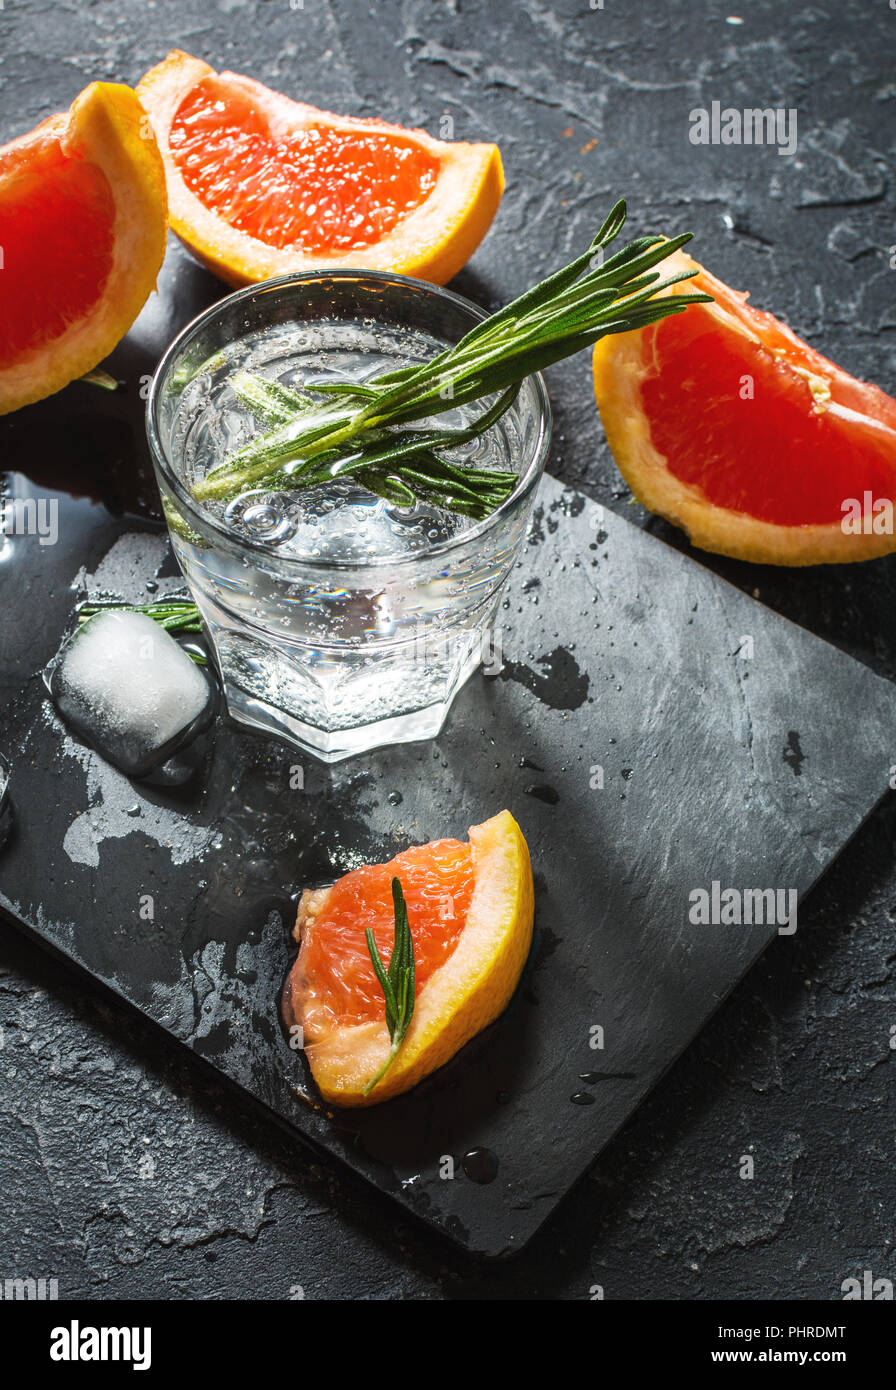 Cocktail with grapefruit, ice and rosemary on dark stone background. - Stock Image